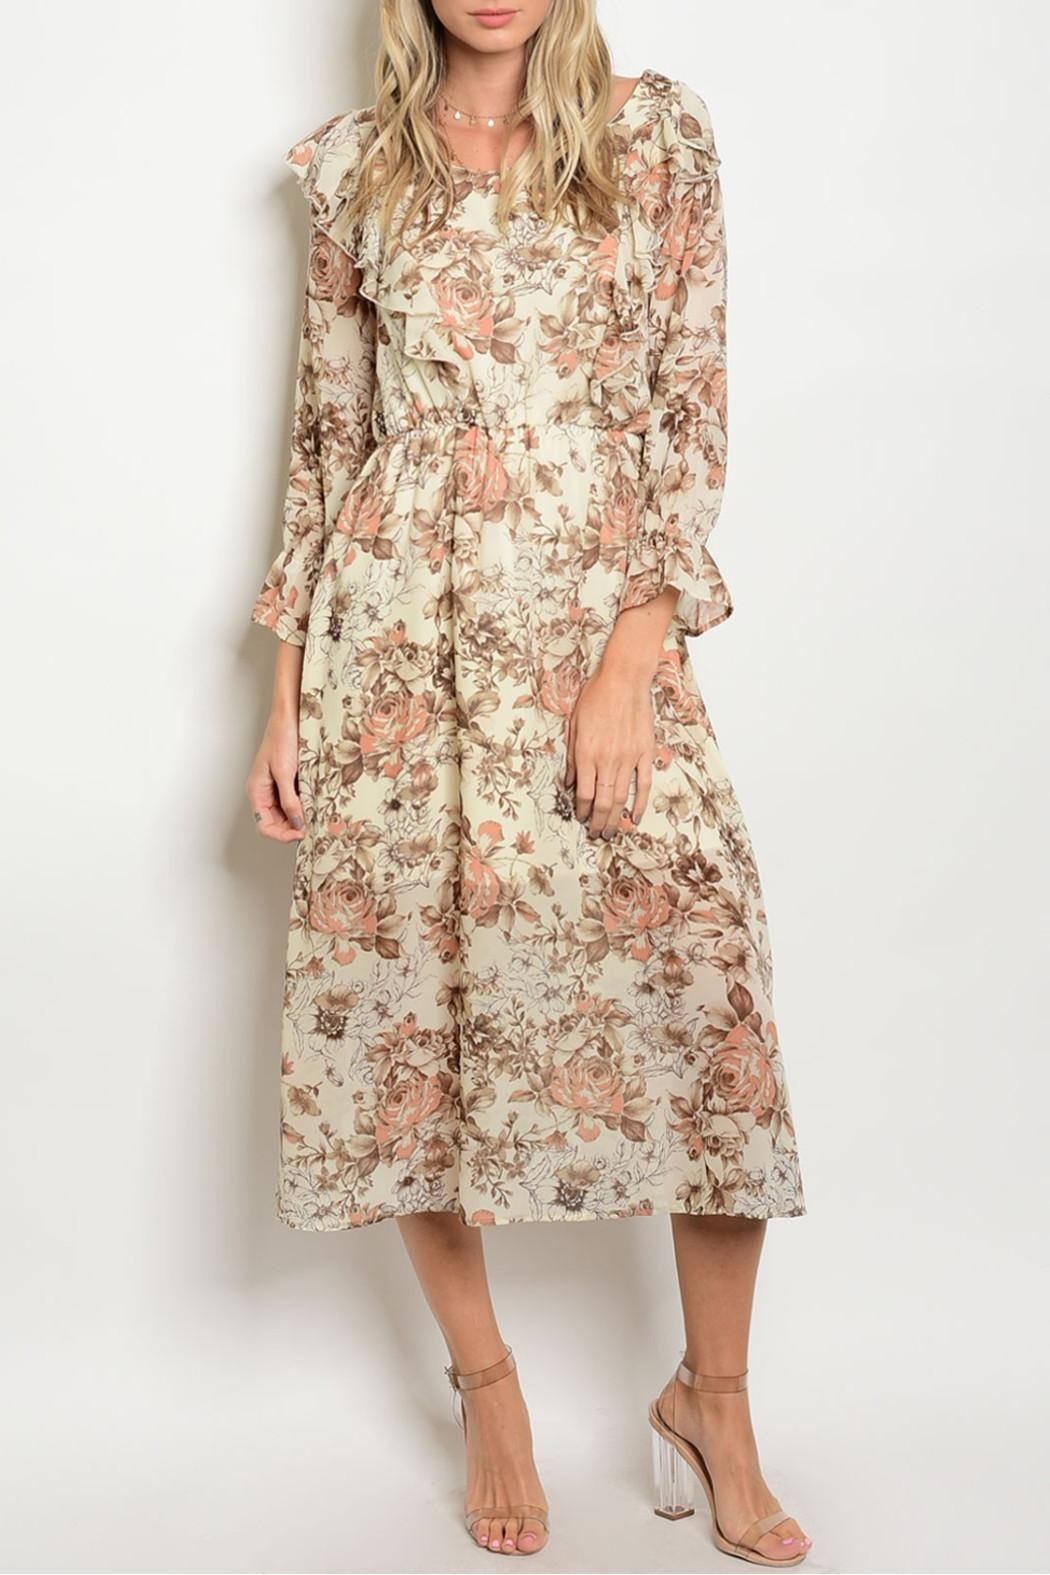 One Story Cream Floral Dress - Main Image